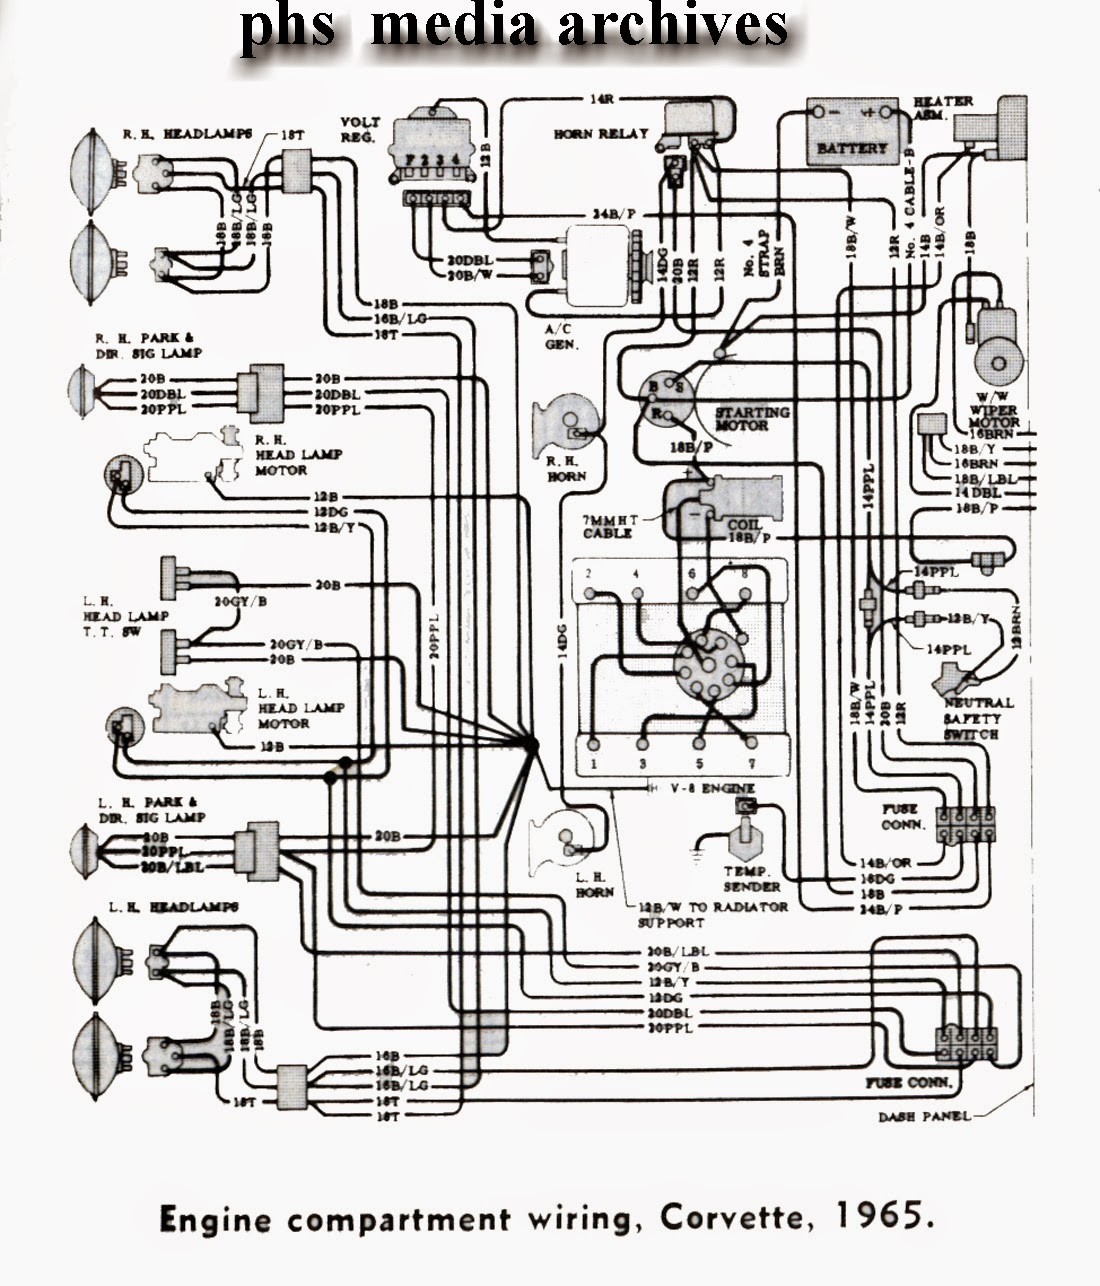 medium resolution of ls1 engine wiring harnes diagram click the image to